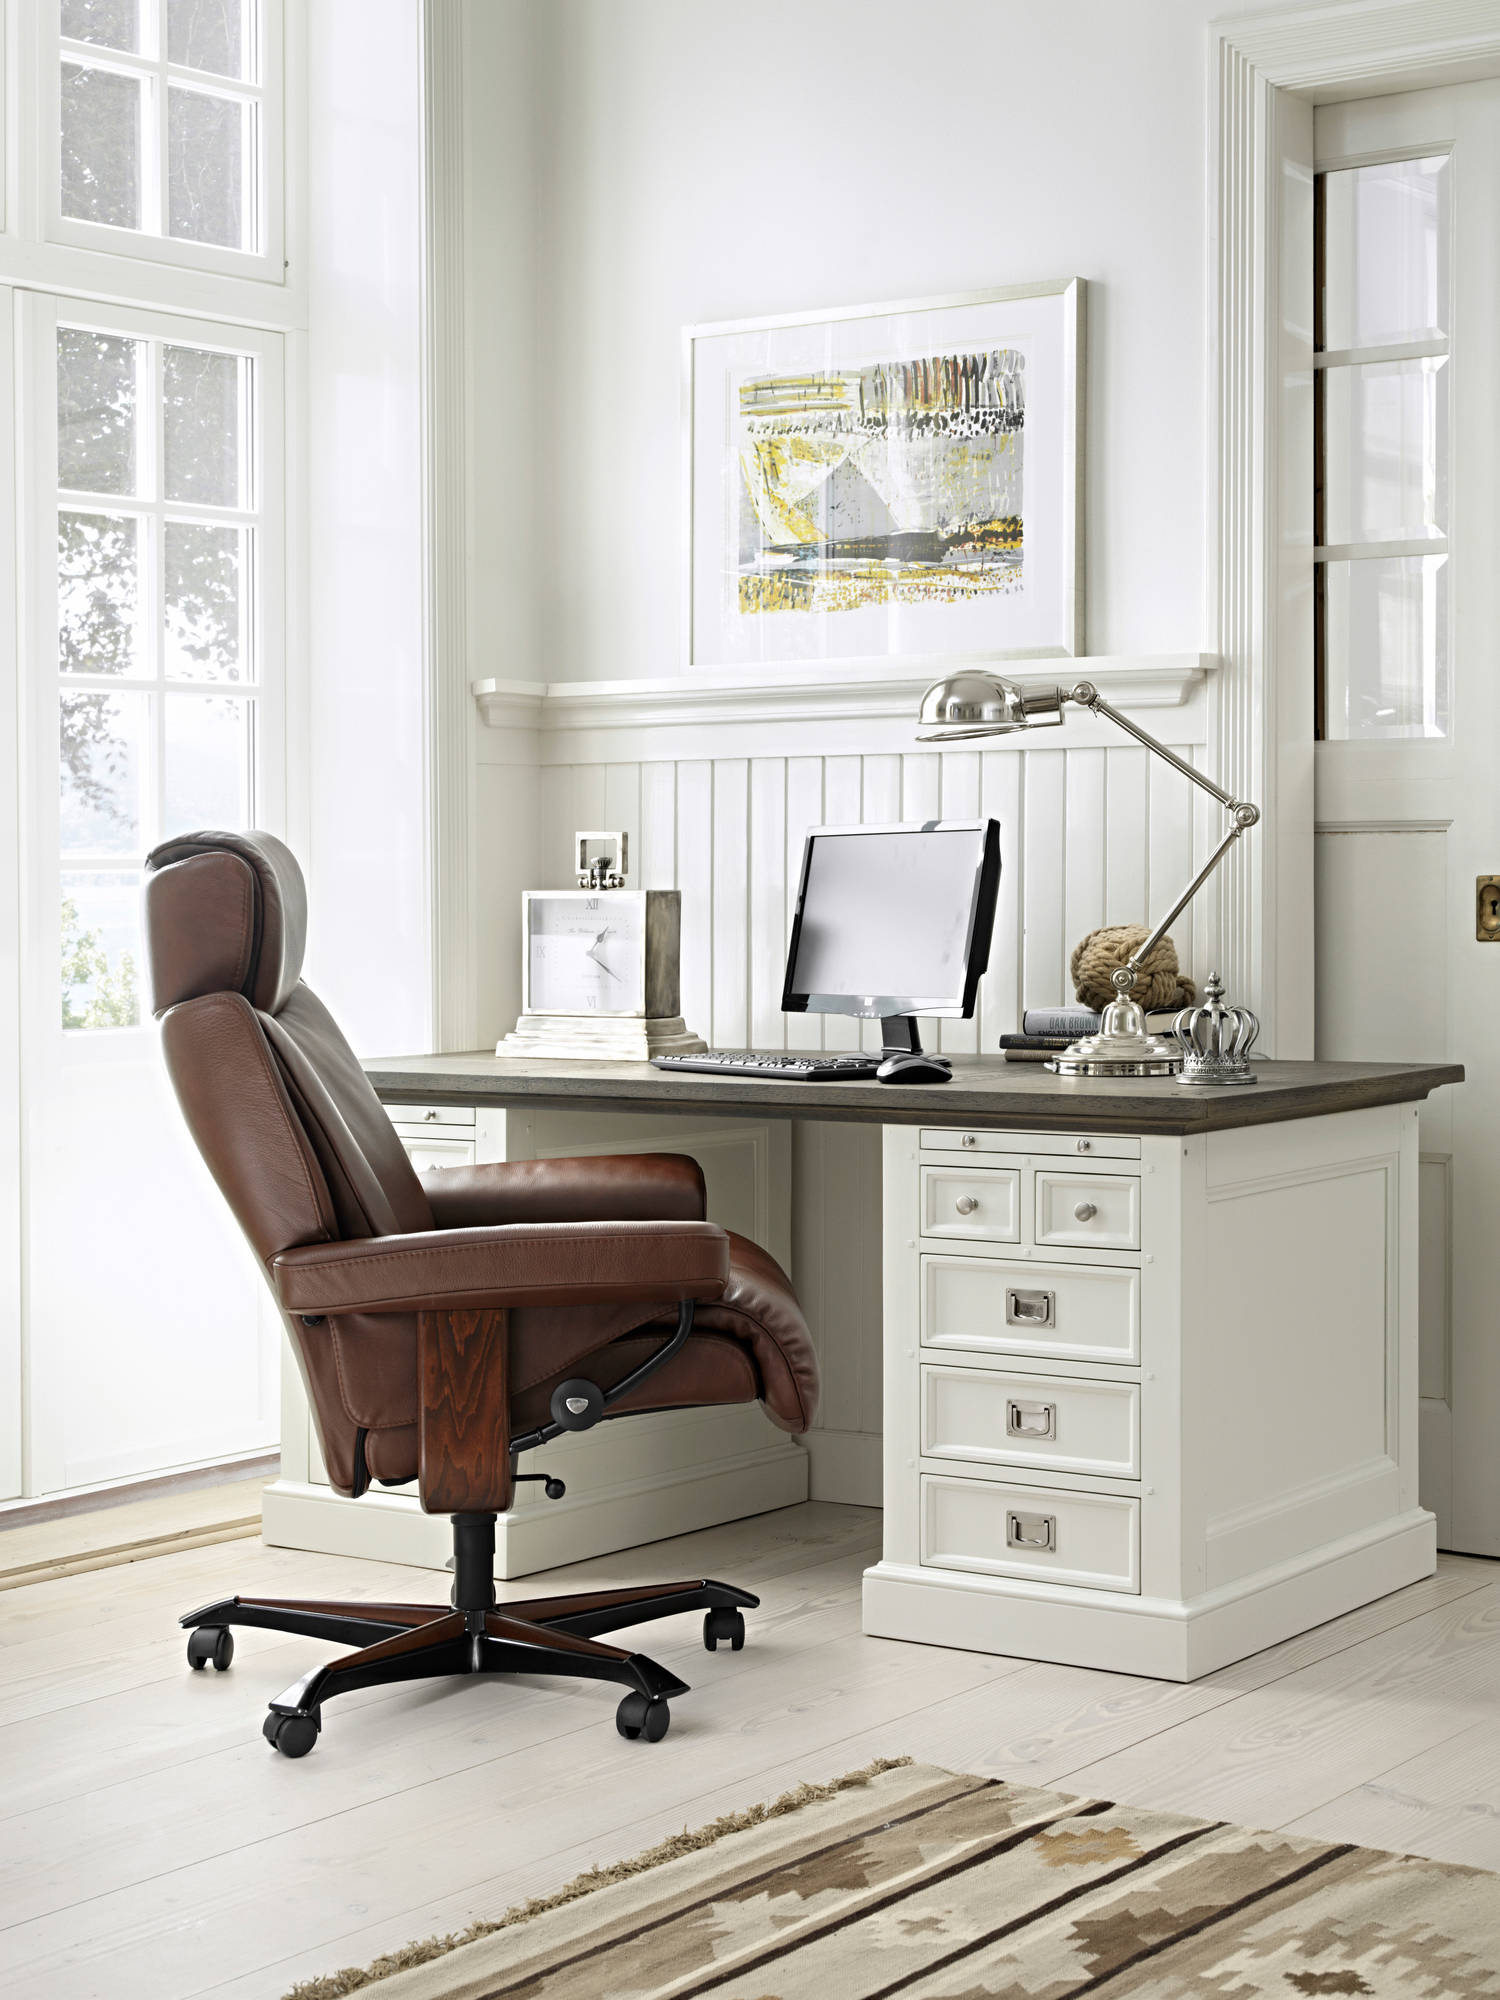 Ekornes Stressless Magic Office Chair | Luxury On Wheels Throughout Kawai Leather Swivel Chairs (Image 9 of 25)